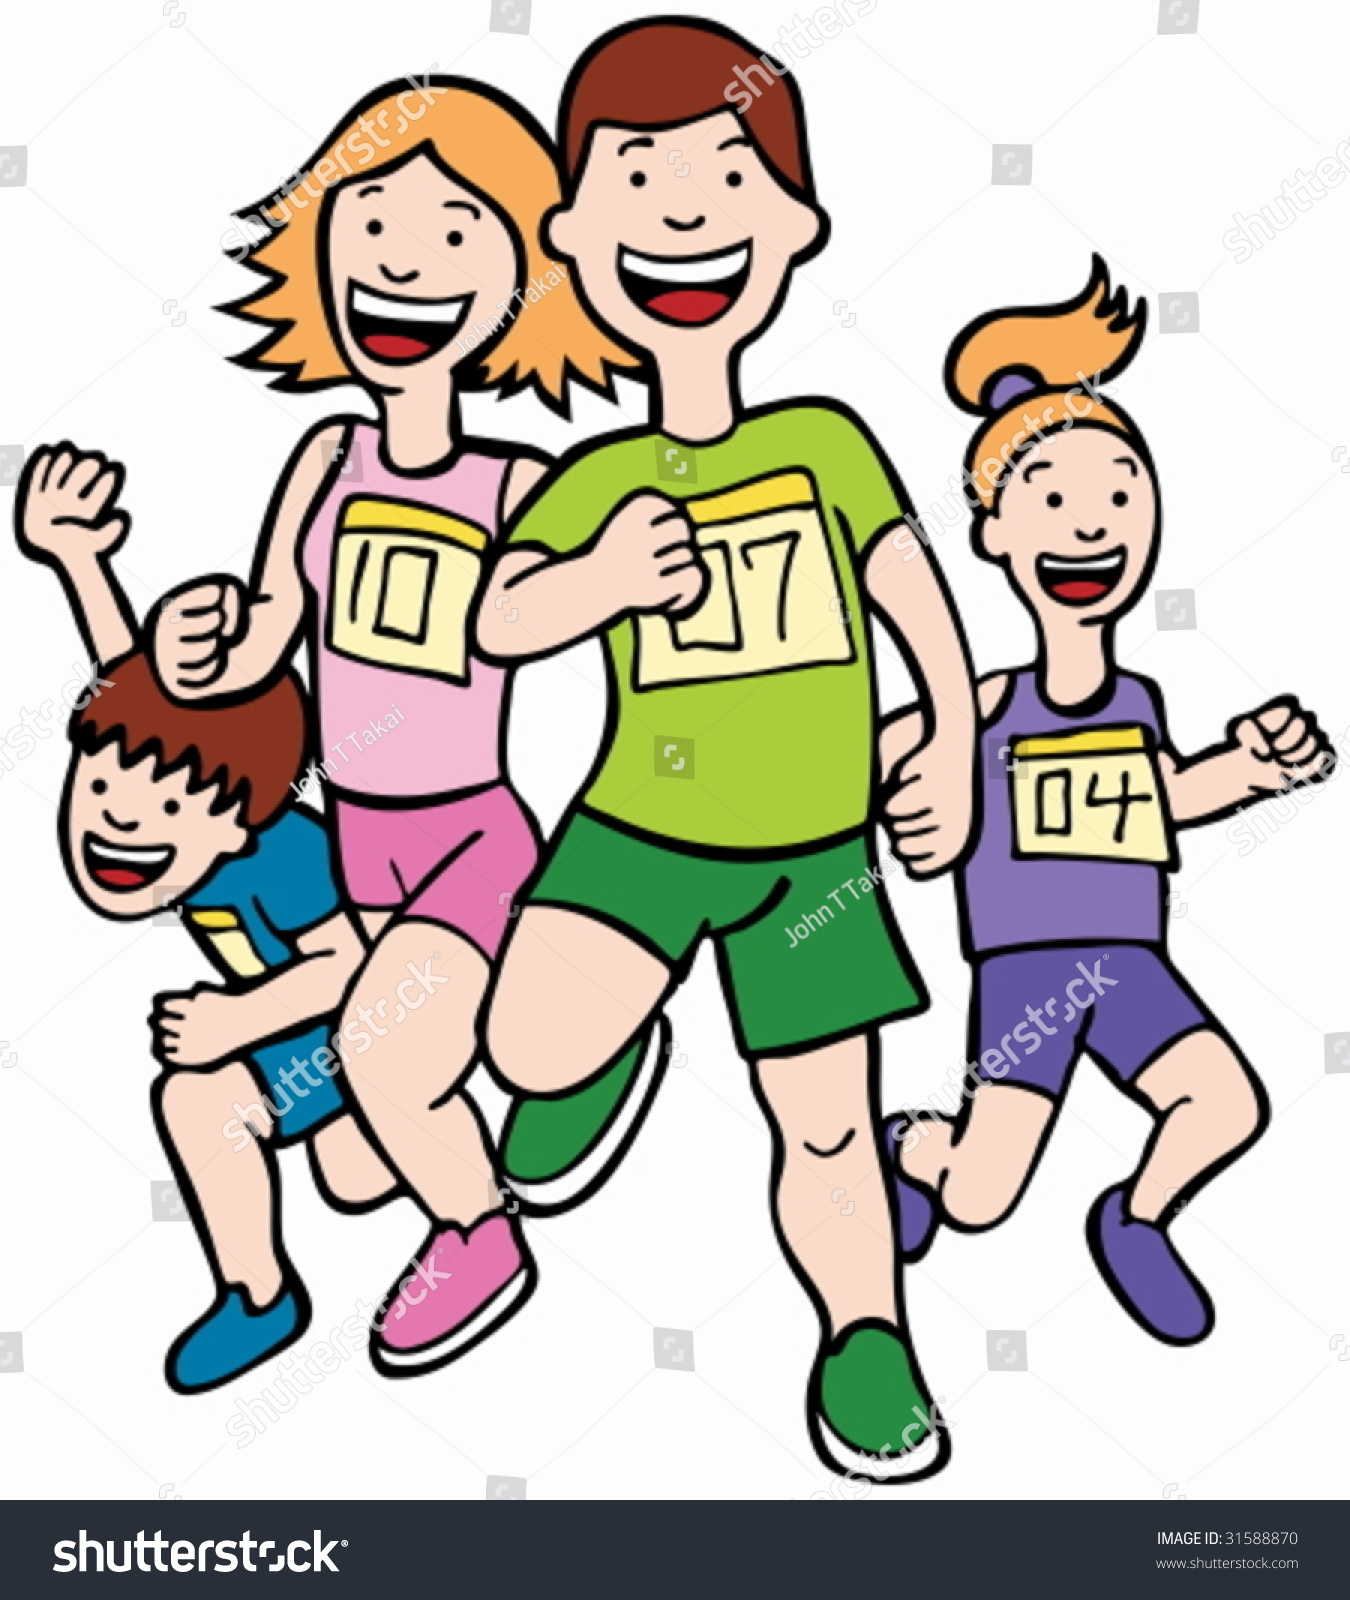 Image result for images of a cartoon runner